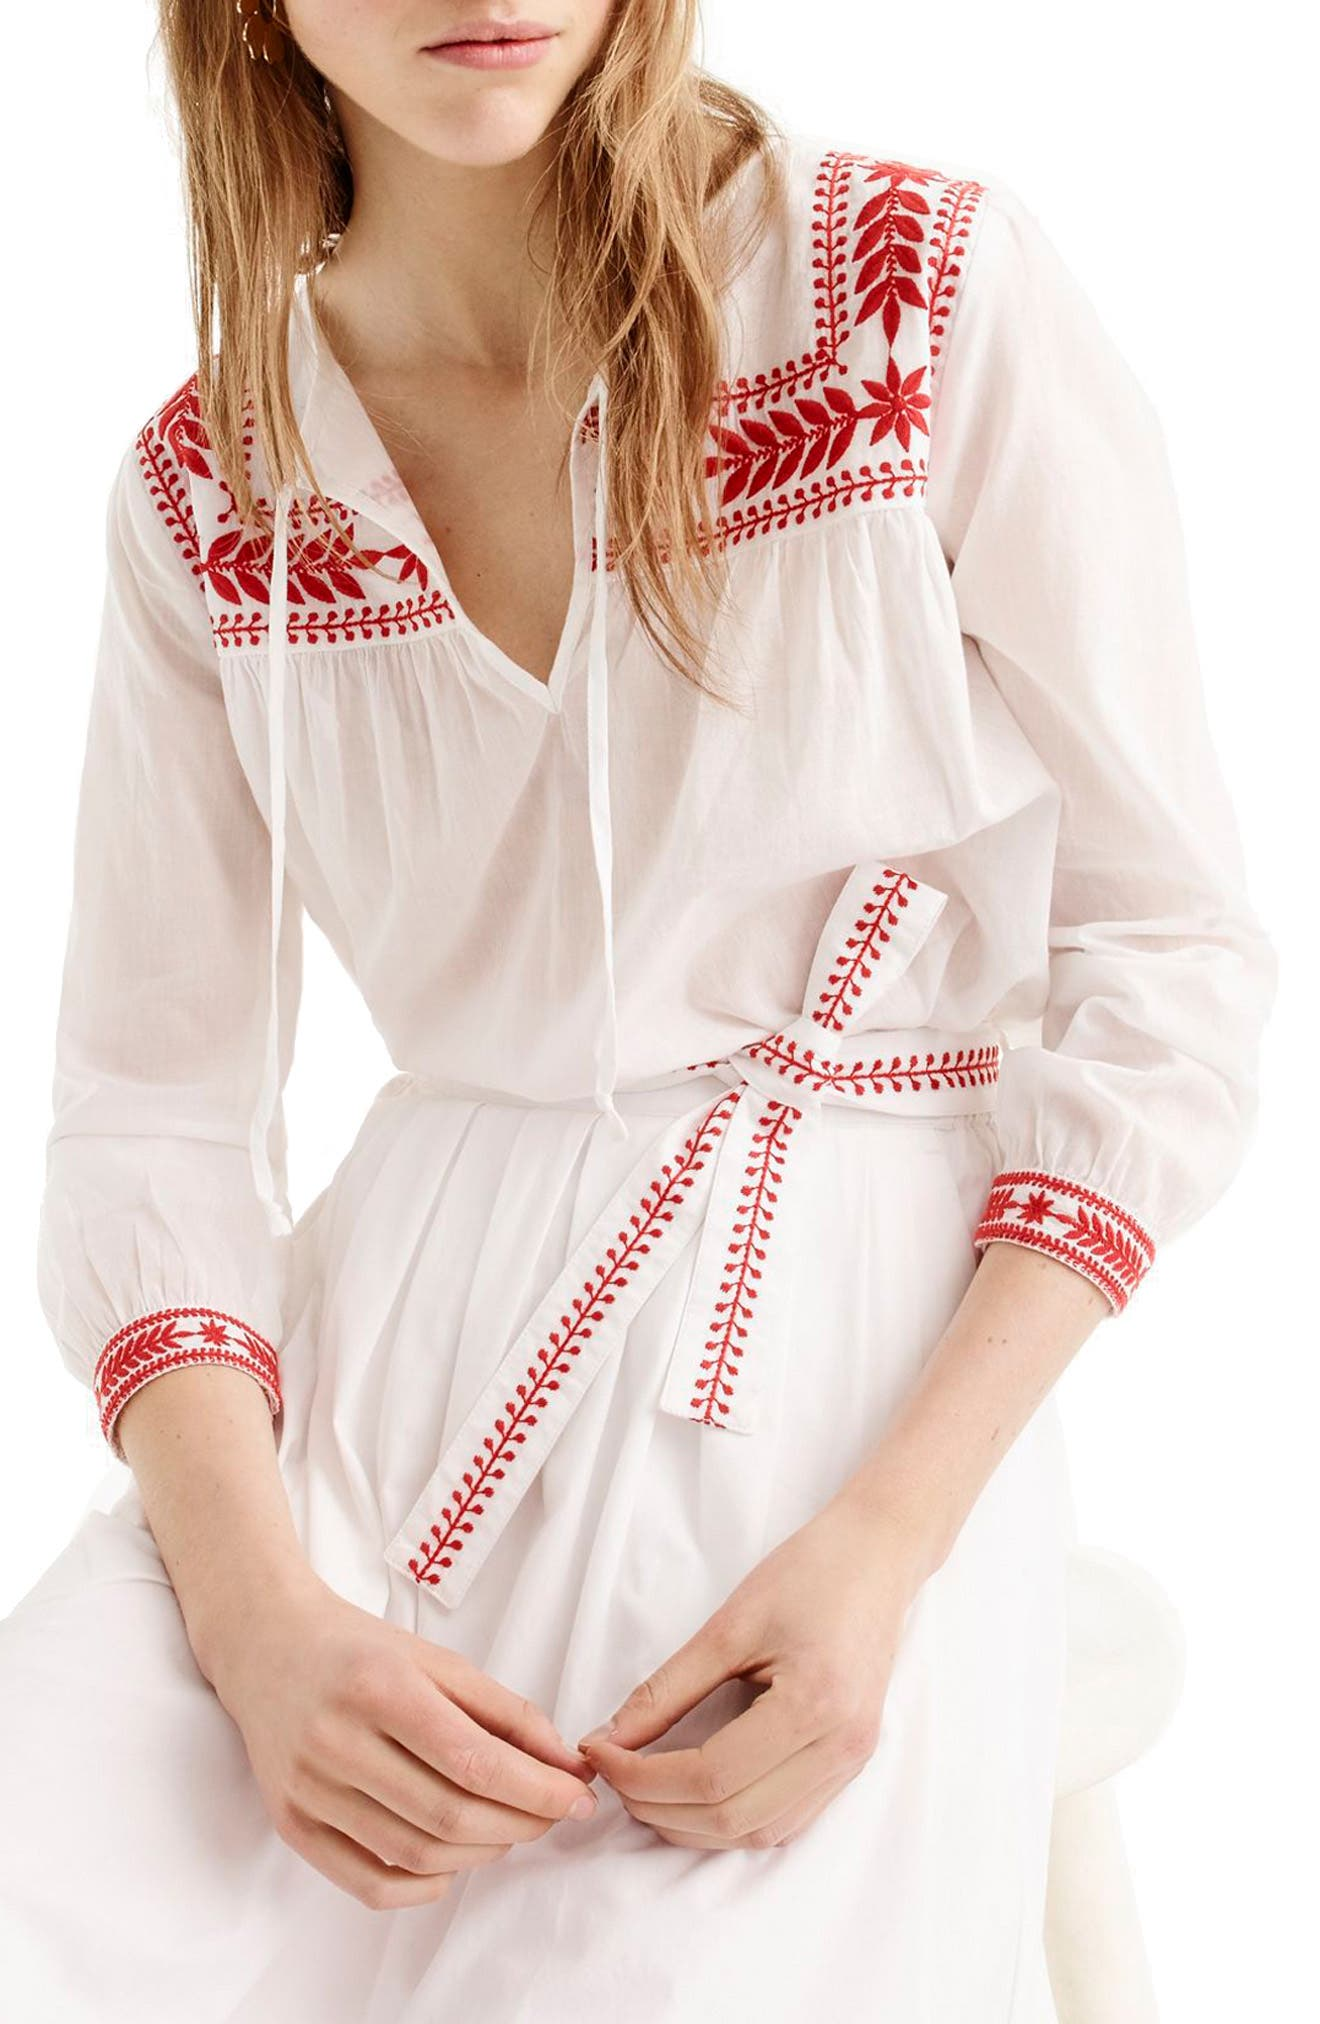 J.Crew Embroidered Semolina Top,                             Main thumbnail 1, color,                             White Red